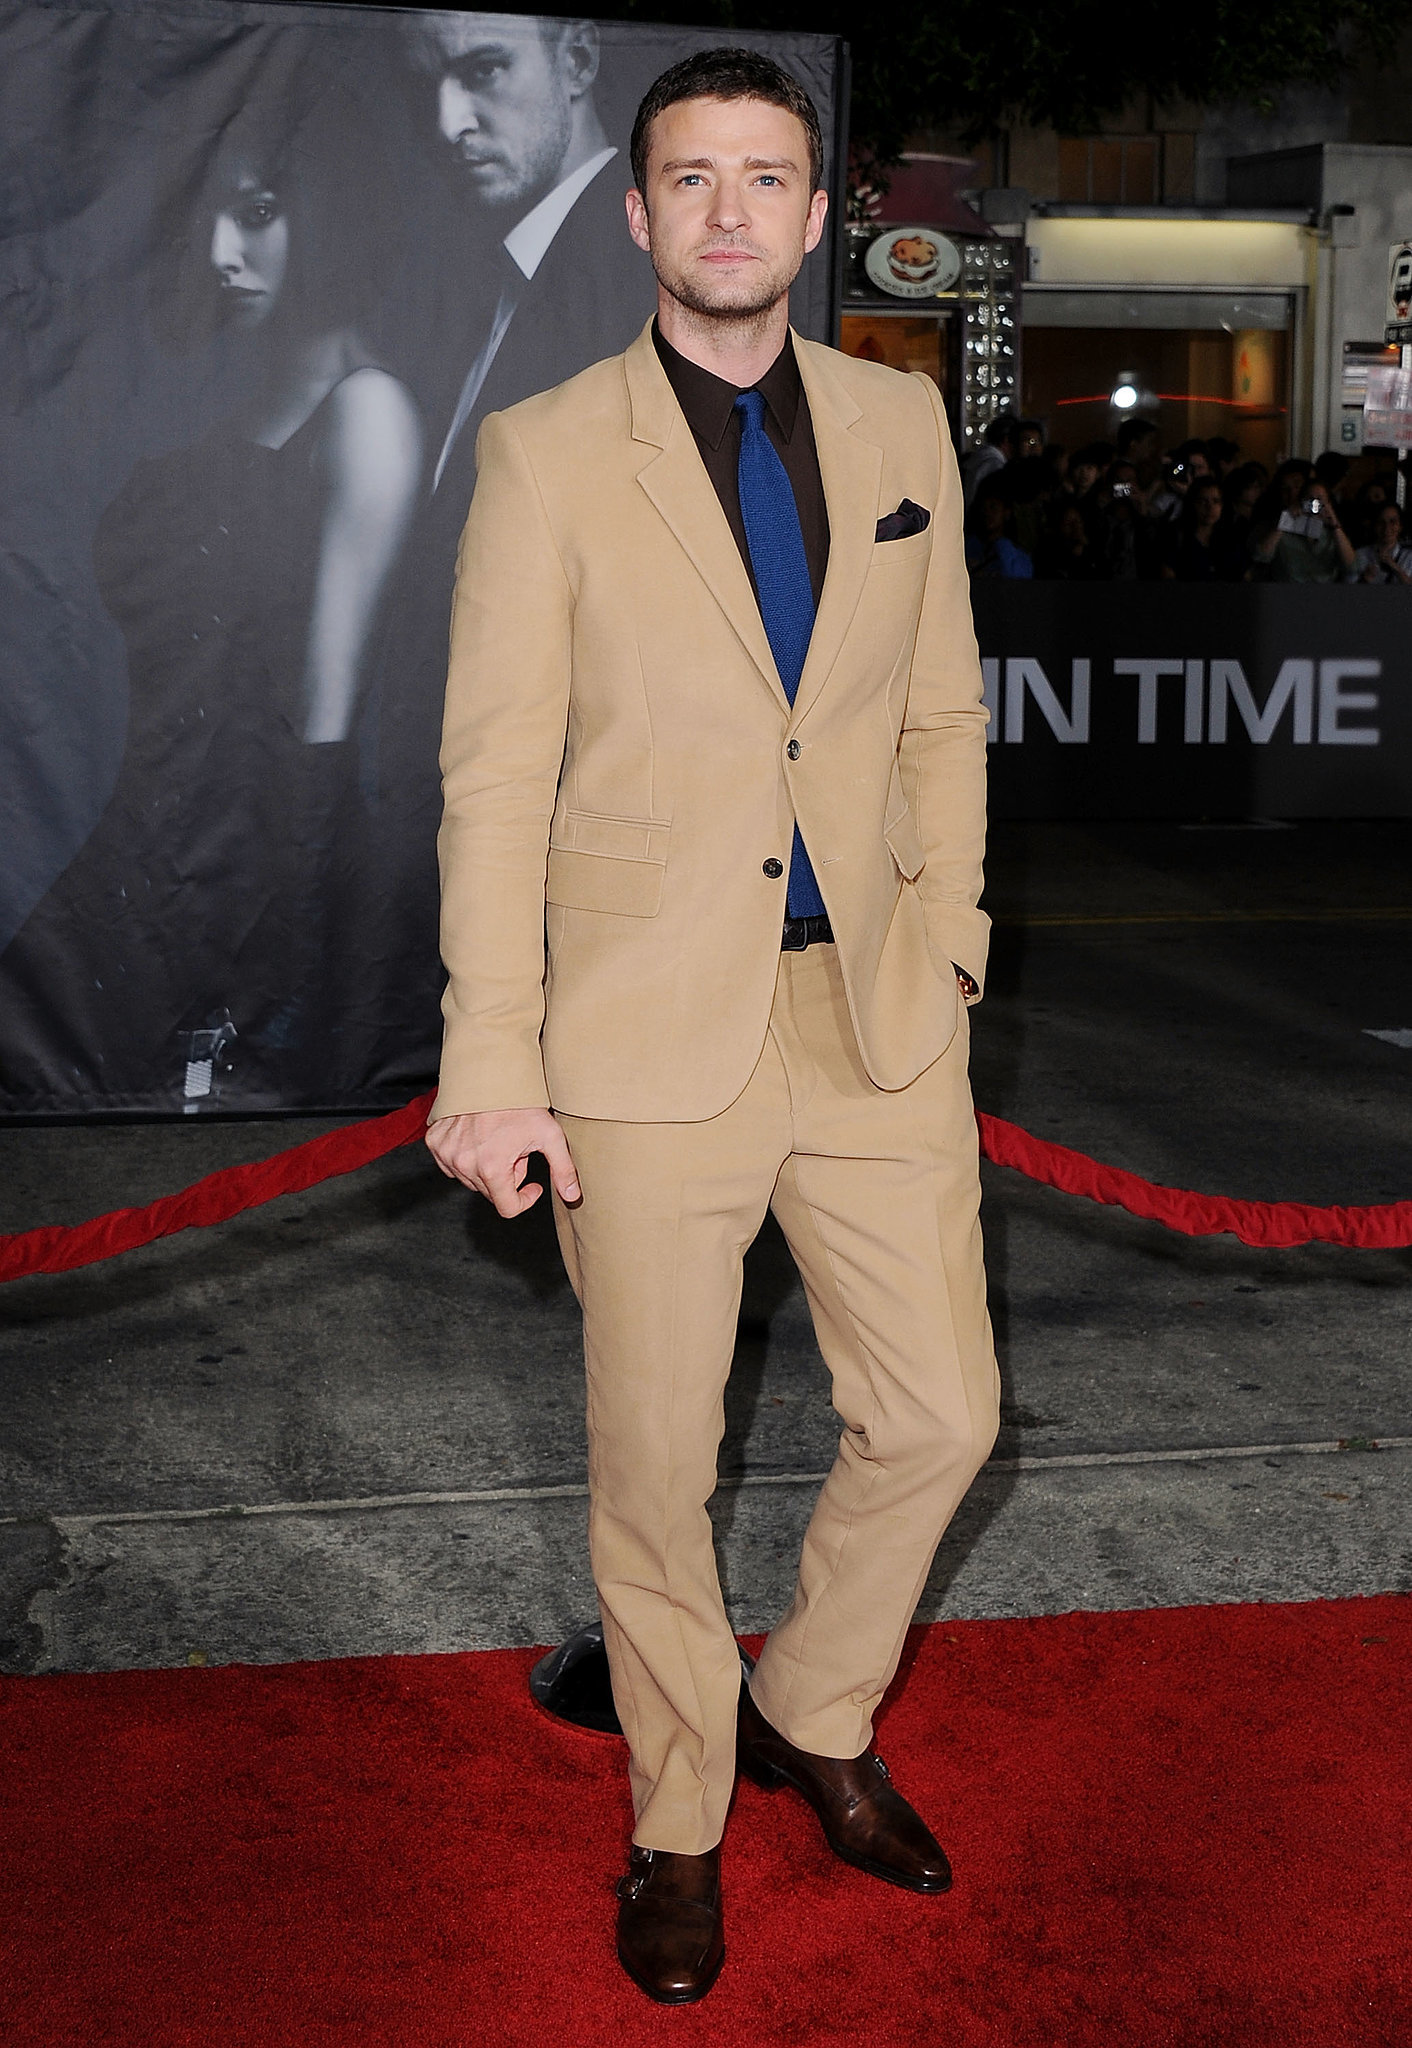 Justin showed off a risky color combo at the In Time premiere in October 2011 — his camel-colored suit, brown shirt, and navy tie wo